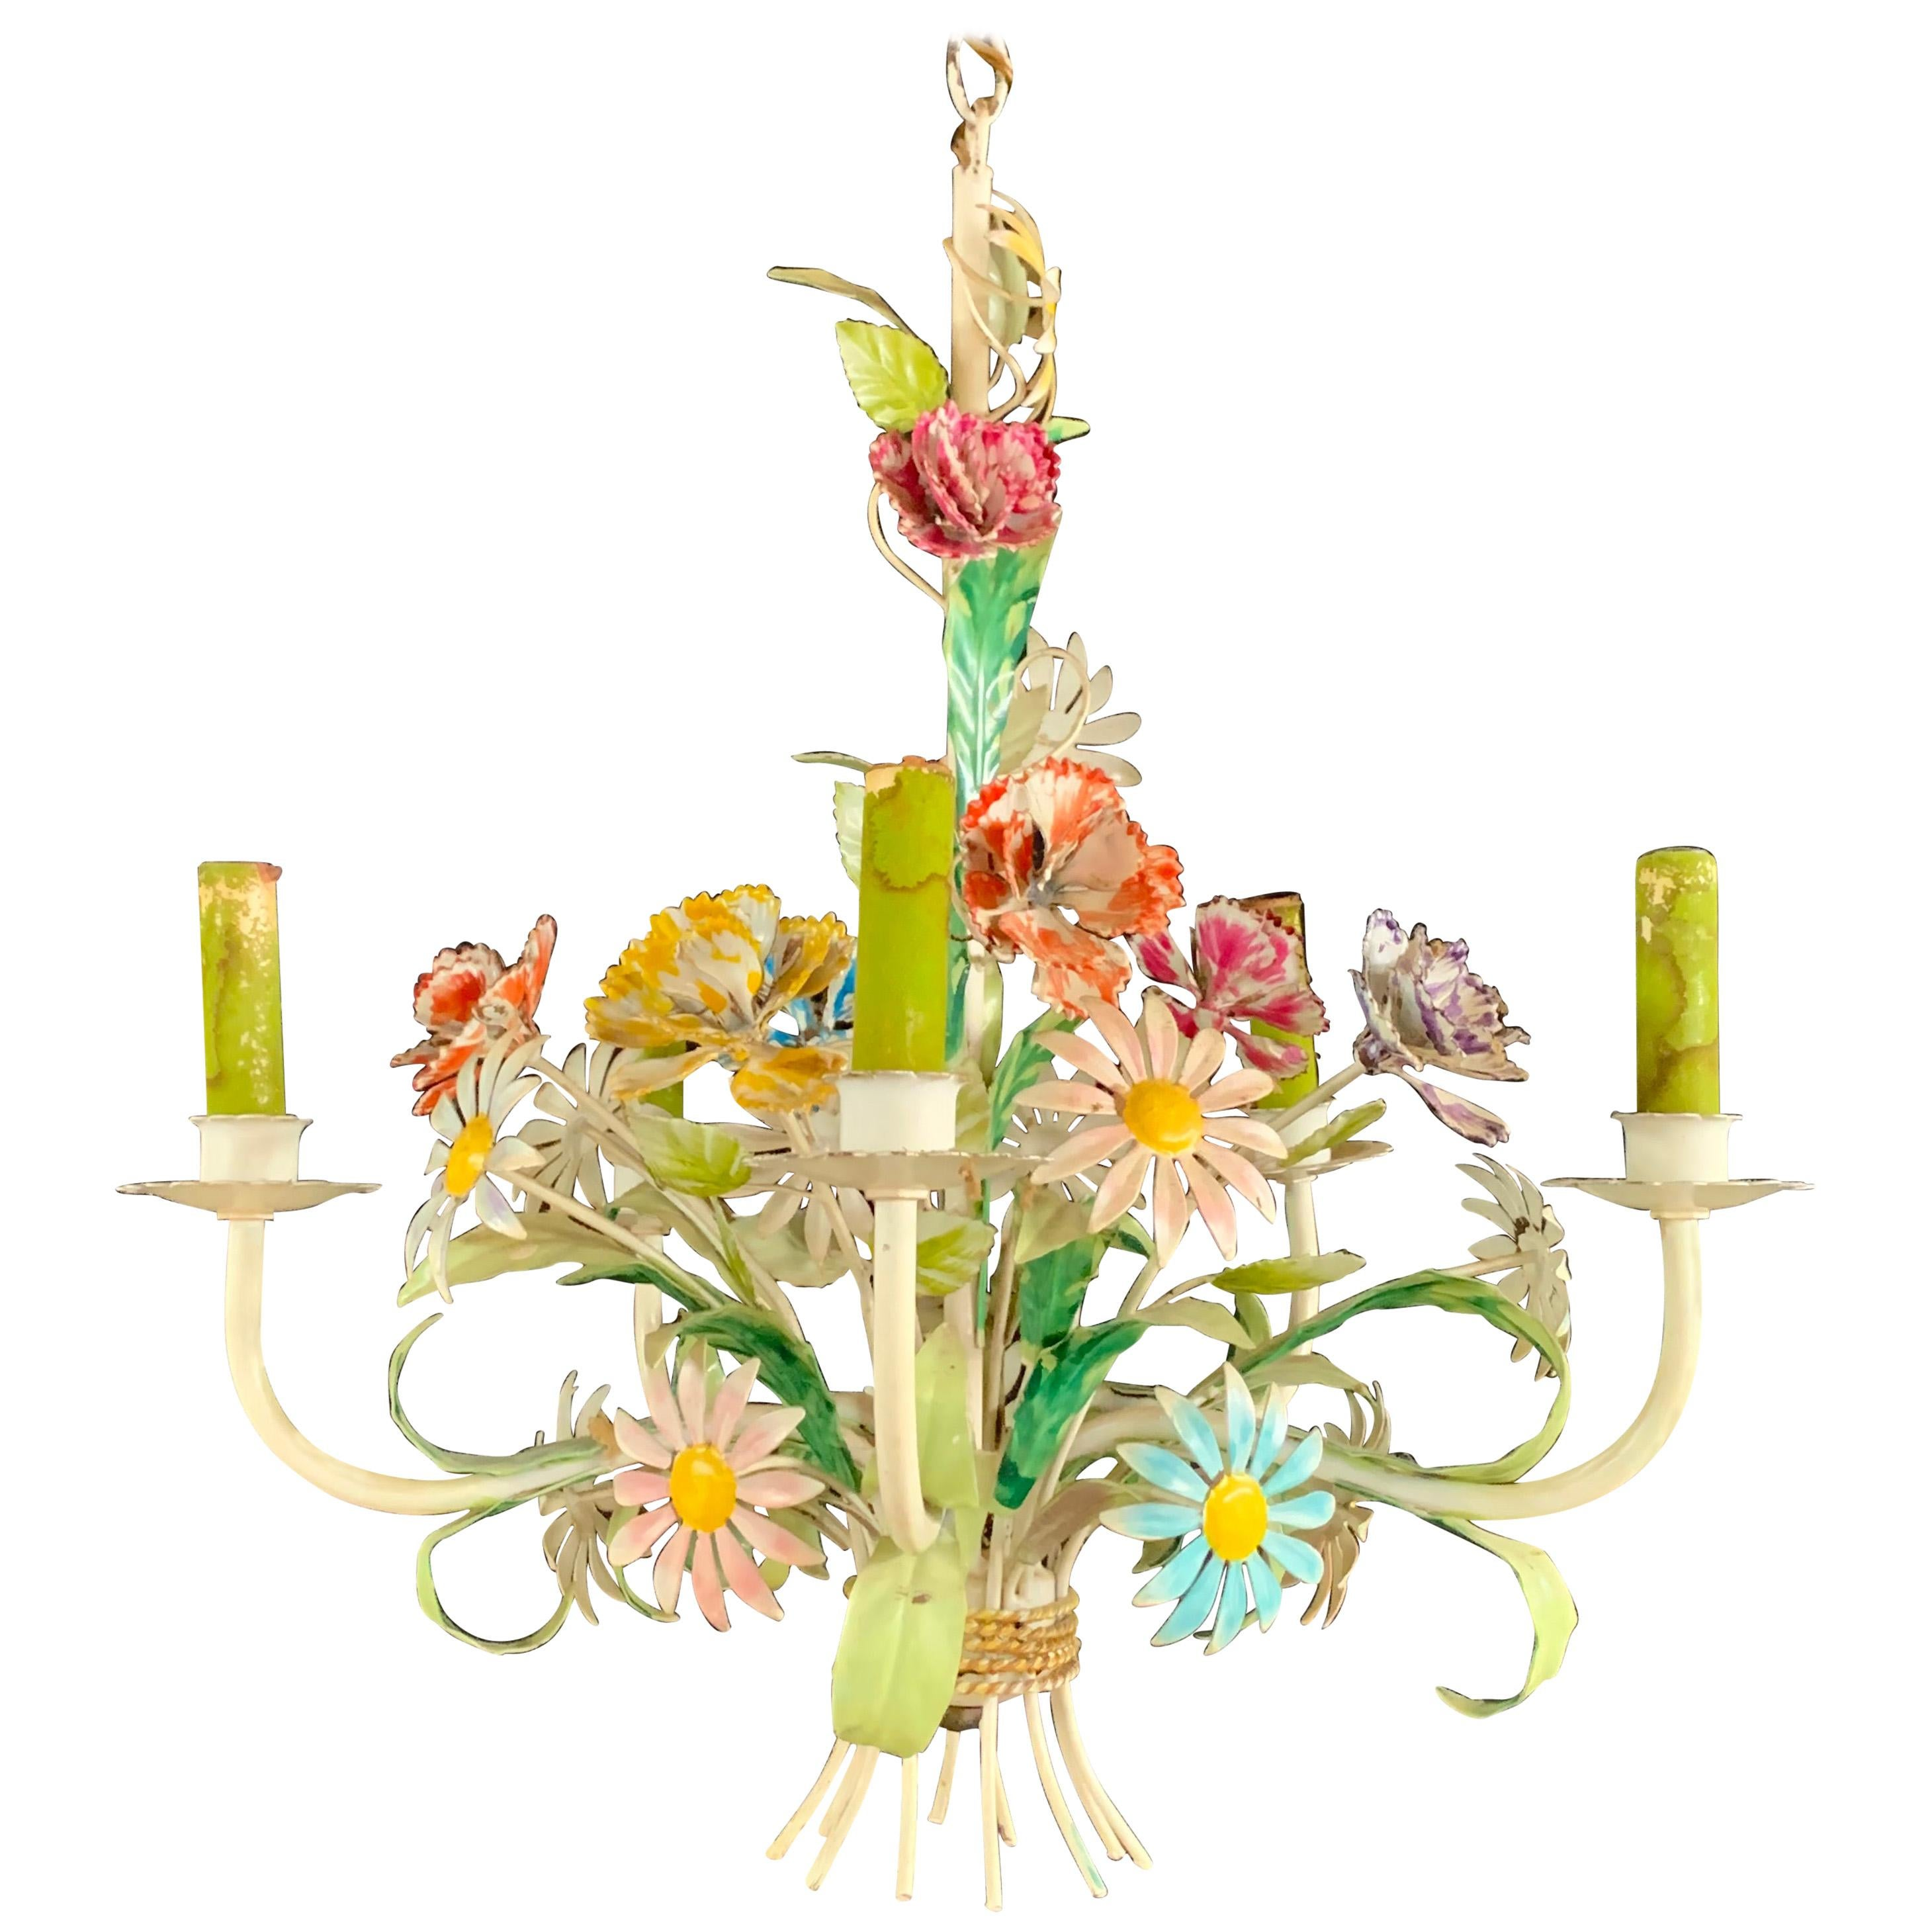 Boho Chic Italian Tole Metal Flowers Chandelier with Four Arms